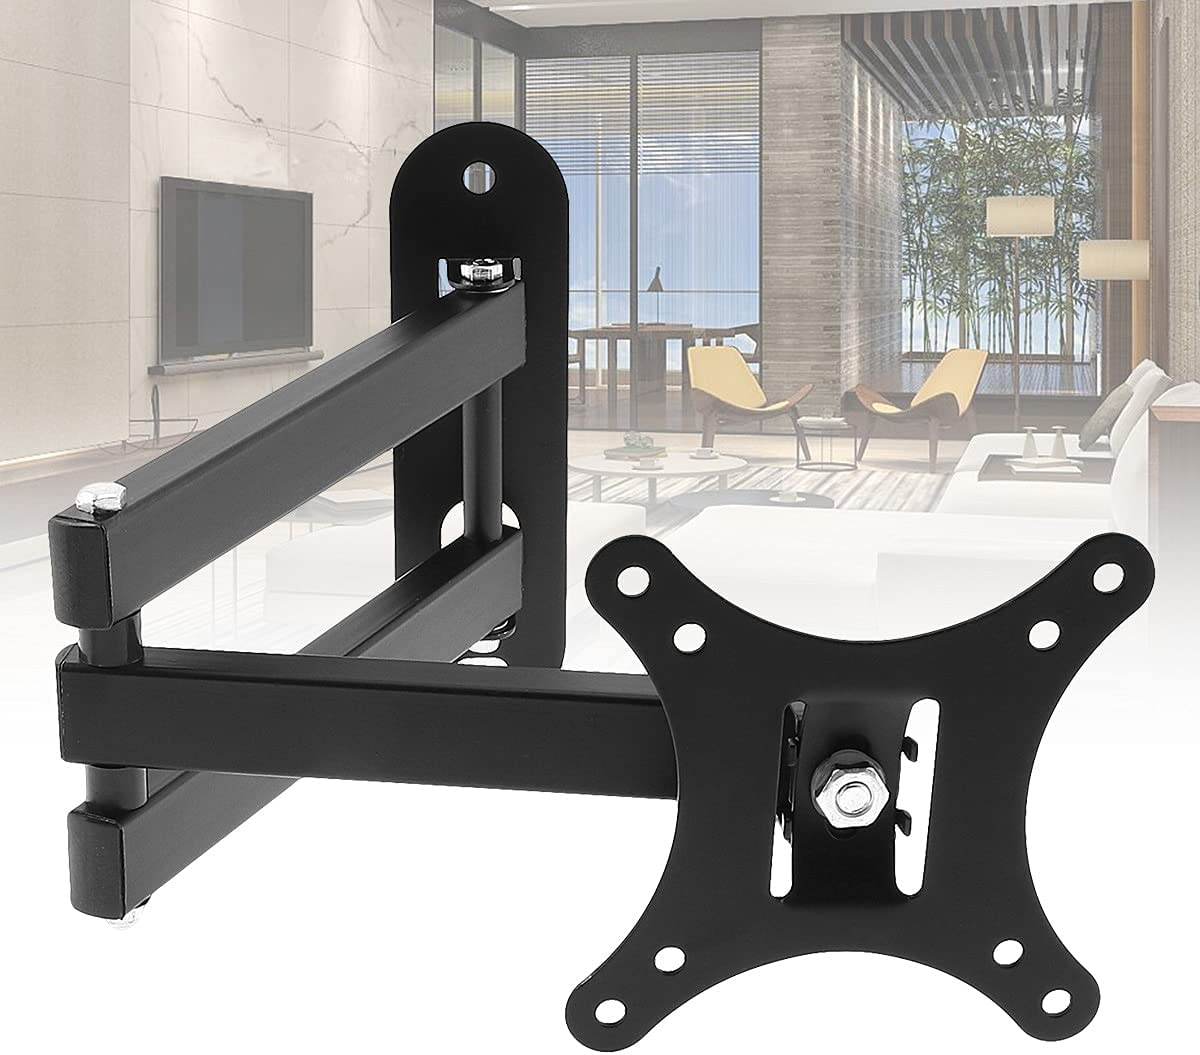 TANGIST Universal 10KG Adjustable TV Wall Mount Bracket 2021new shipping free Frame OFFicial shop